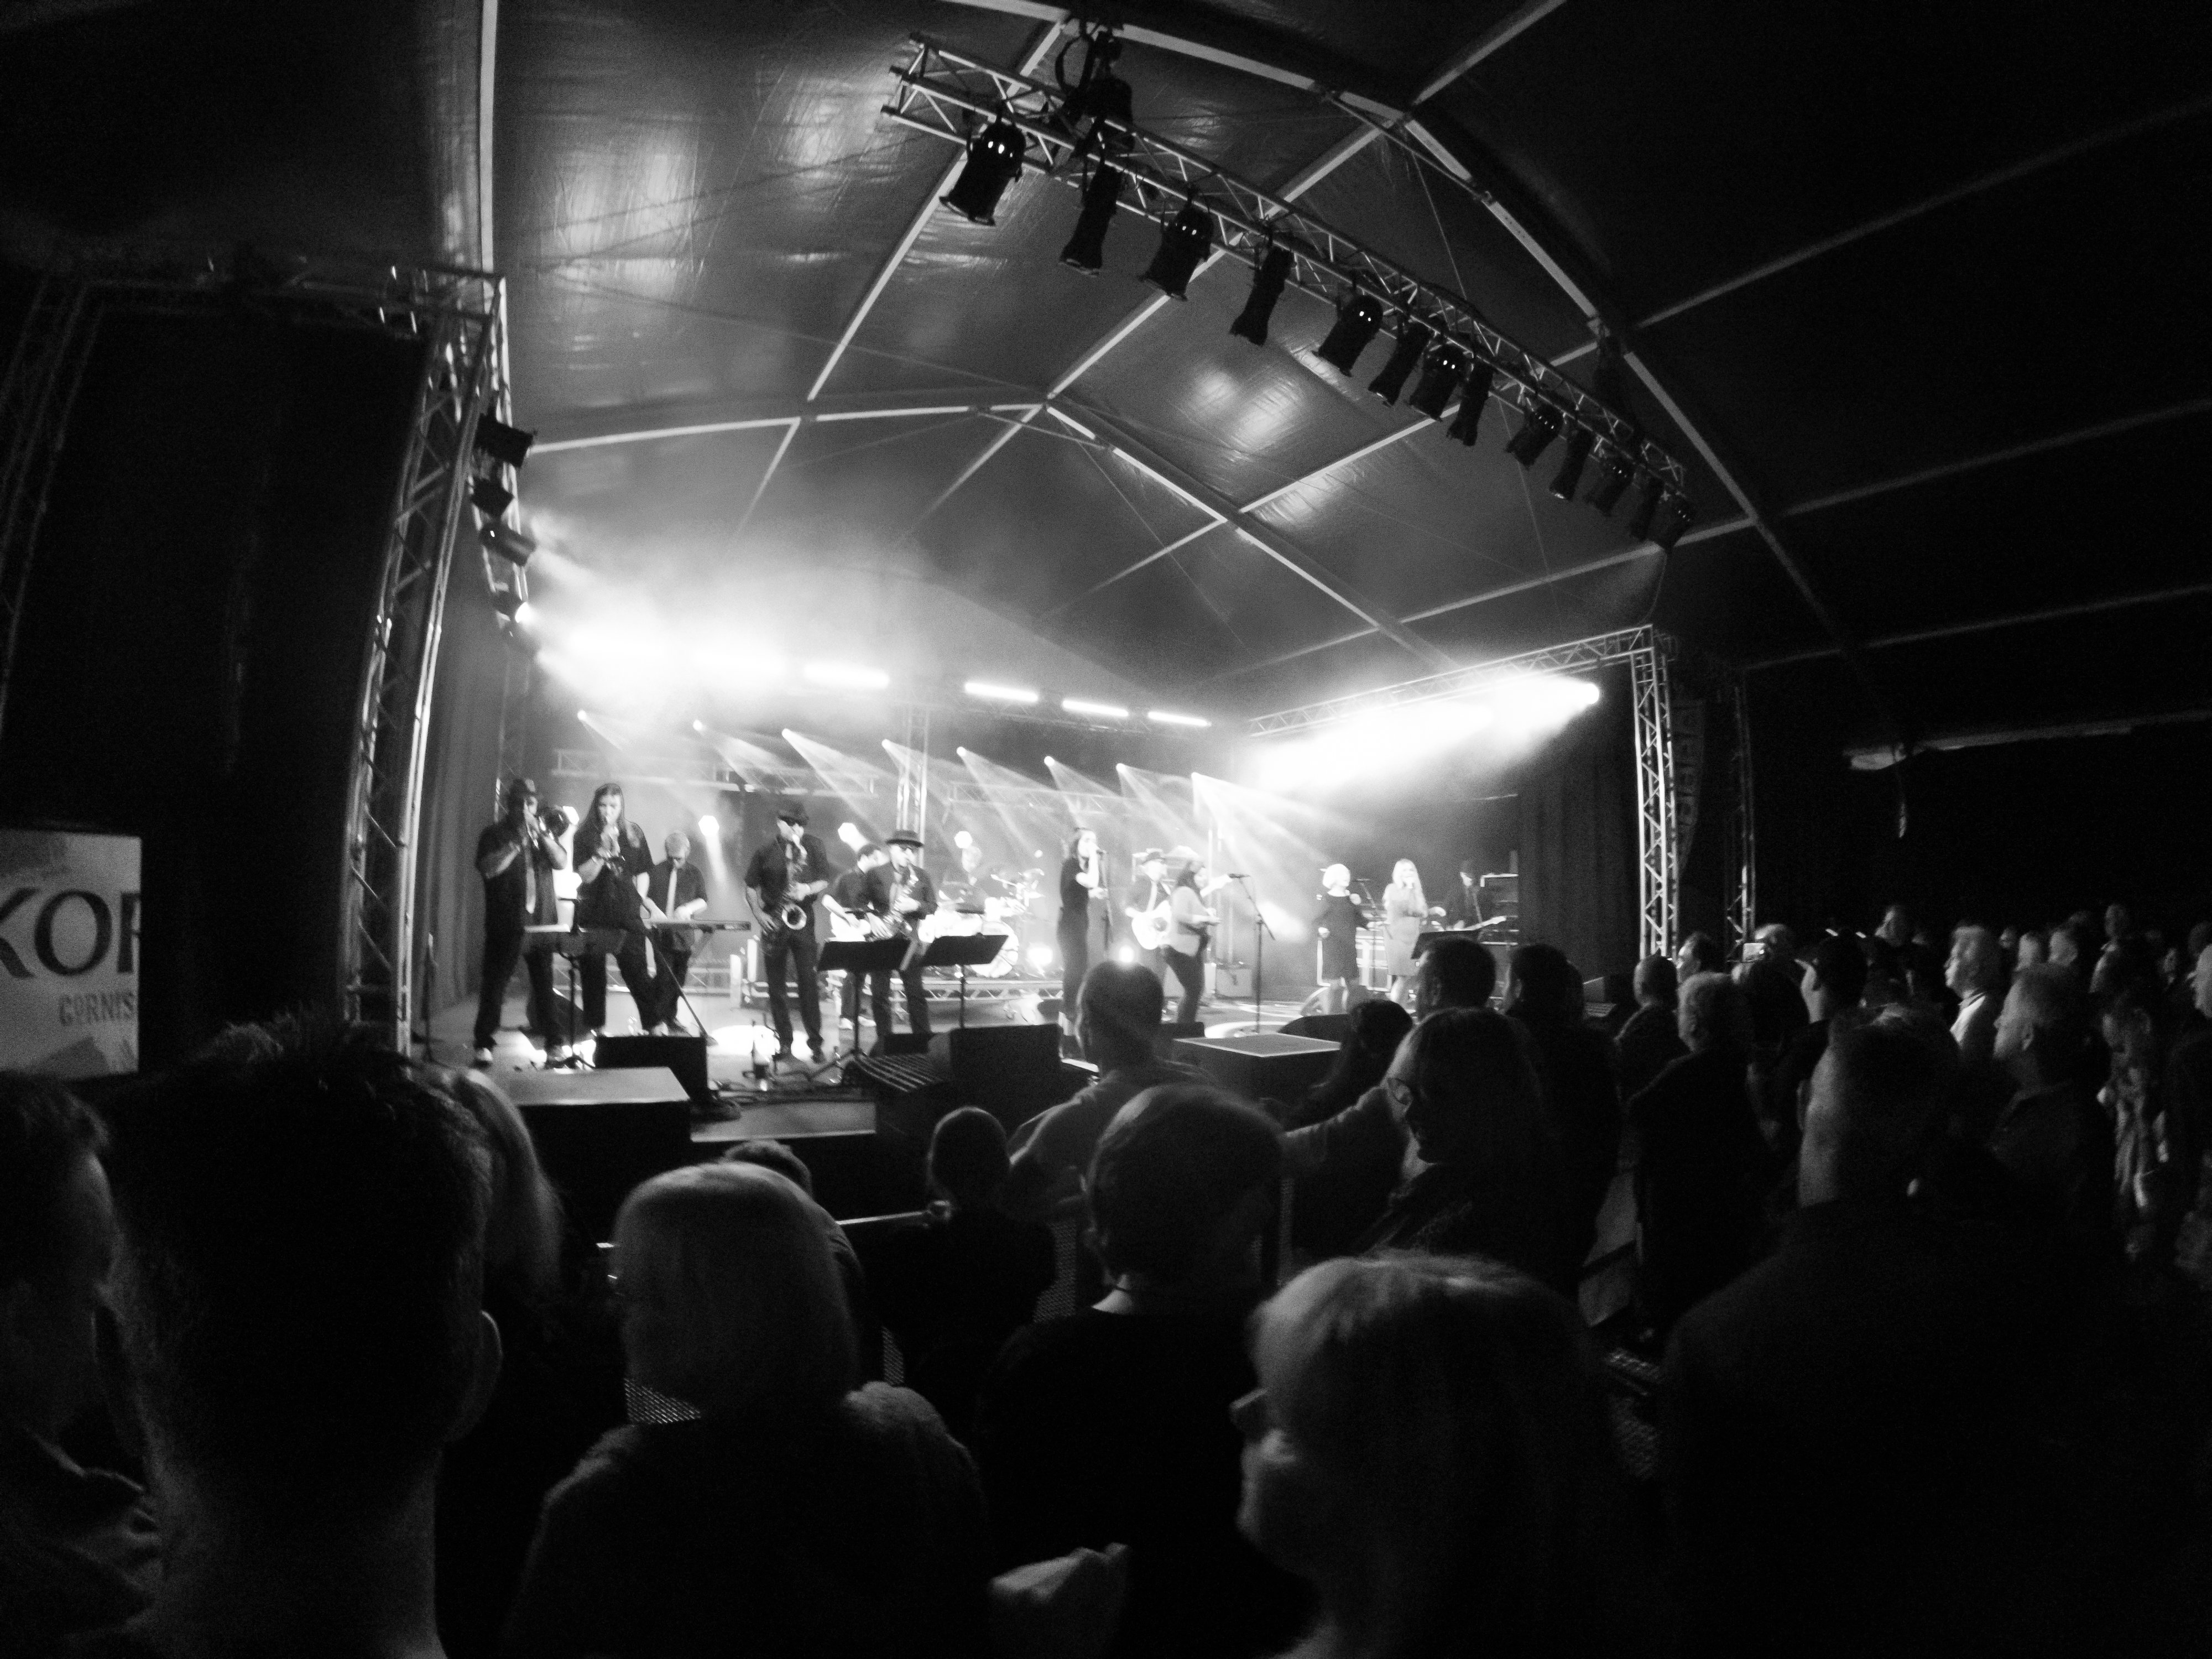 Looe live audience , Soul Sensations 7th Looe performance